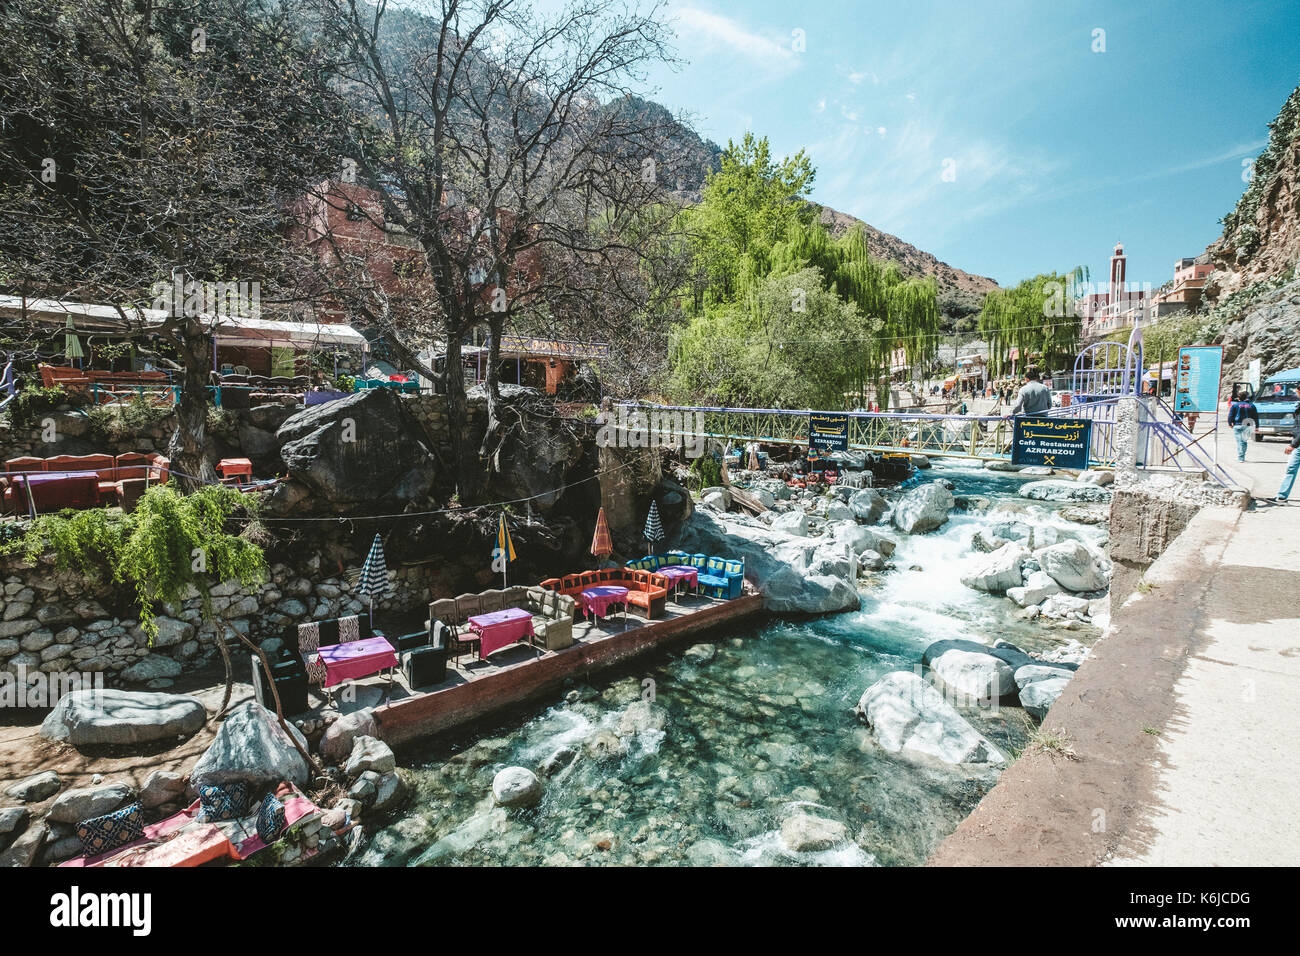 View of Ourika River and restaurants with tables in water, Ourika, Marrakesh Province, Morocco - Stock Image